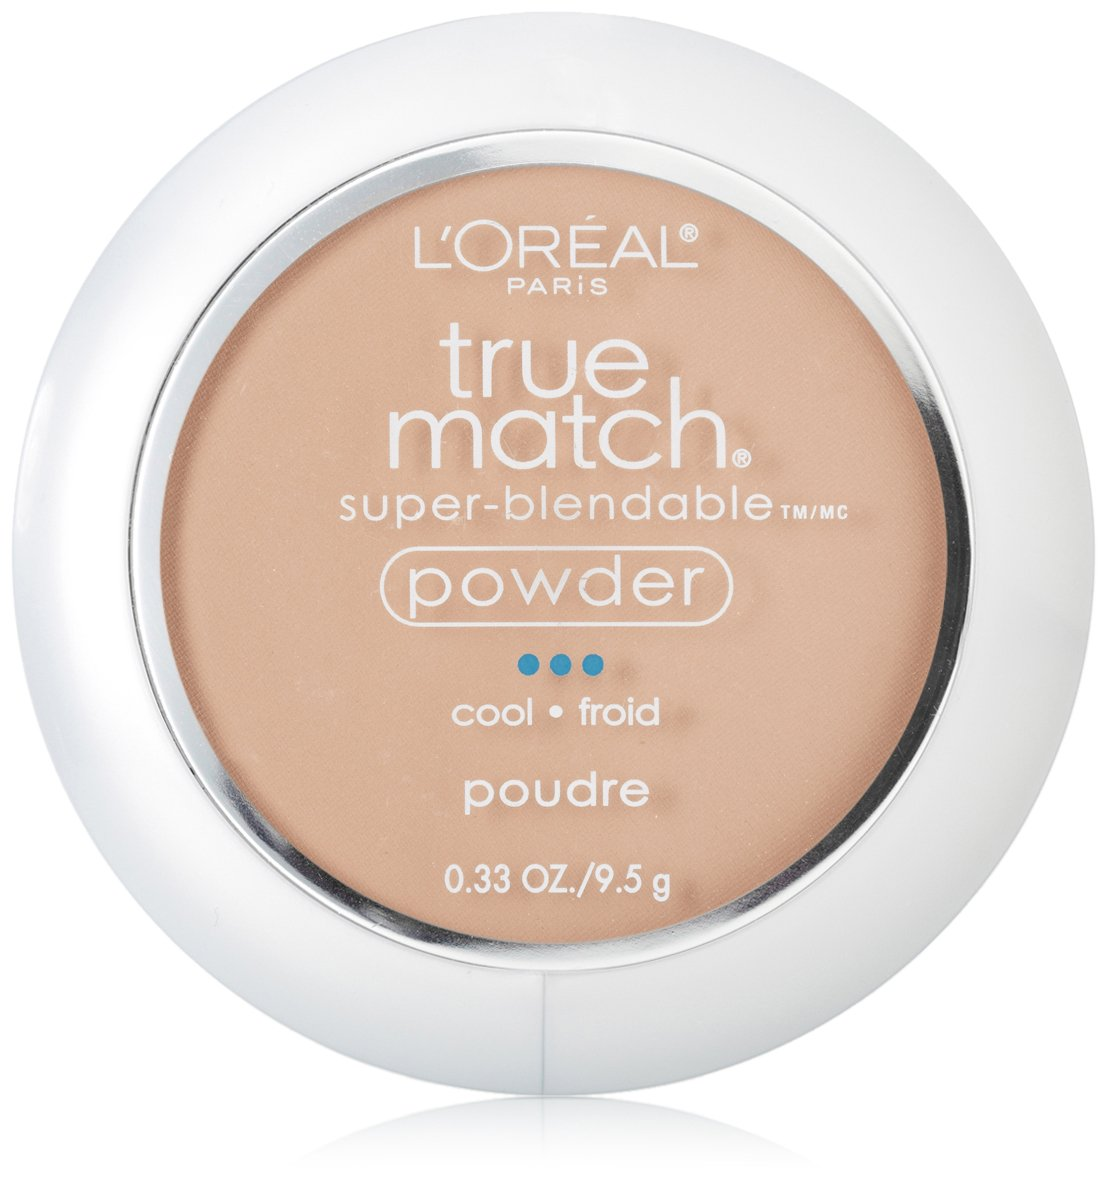 L'Oreal Paris True Match Super-Blendable Powder, Natural Beige, 0.33 Ounce L'Oreal Paris K1600403